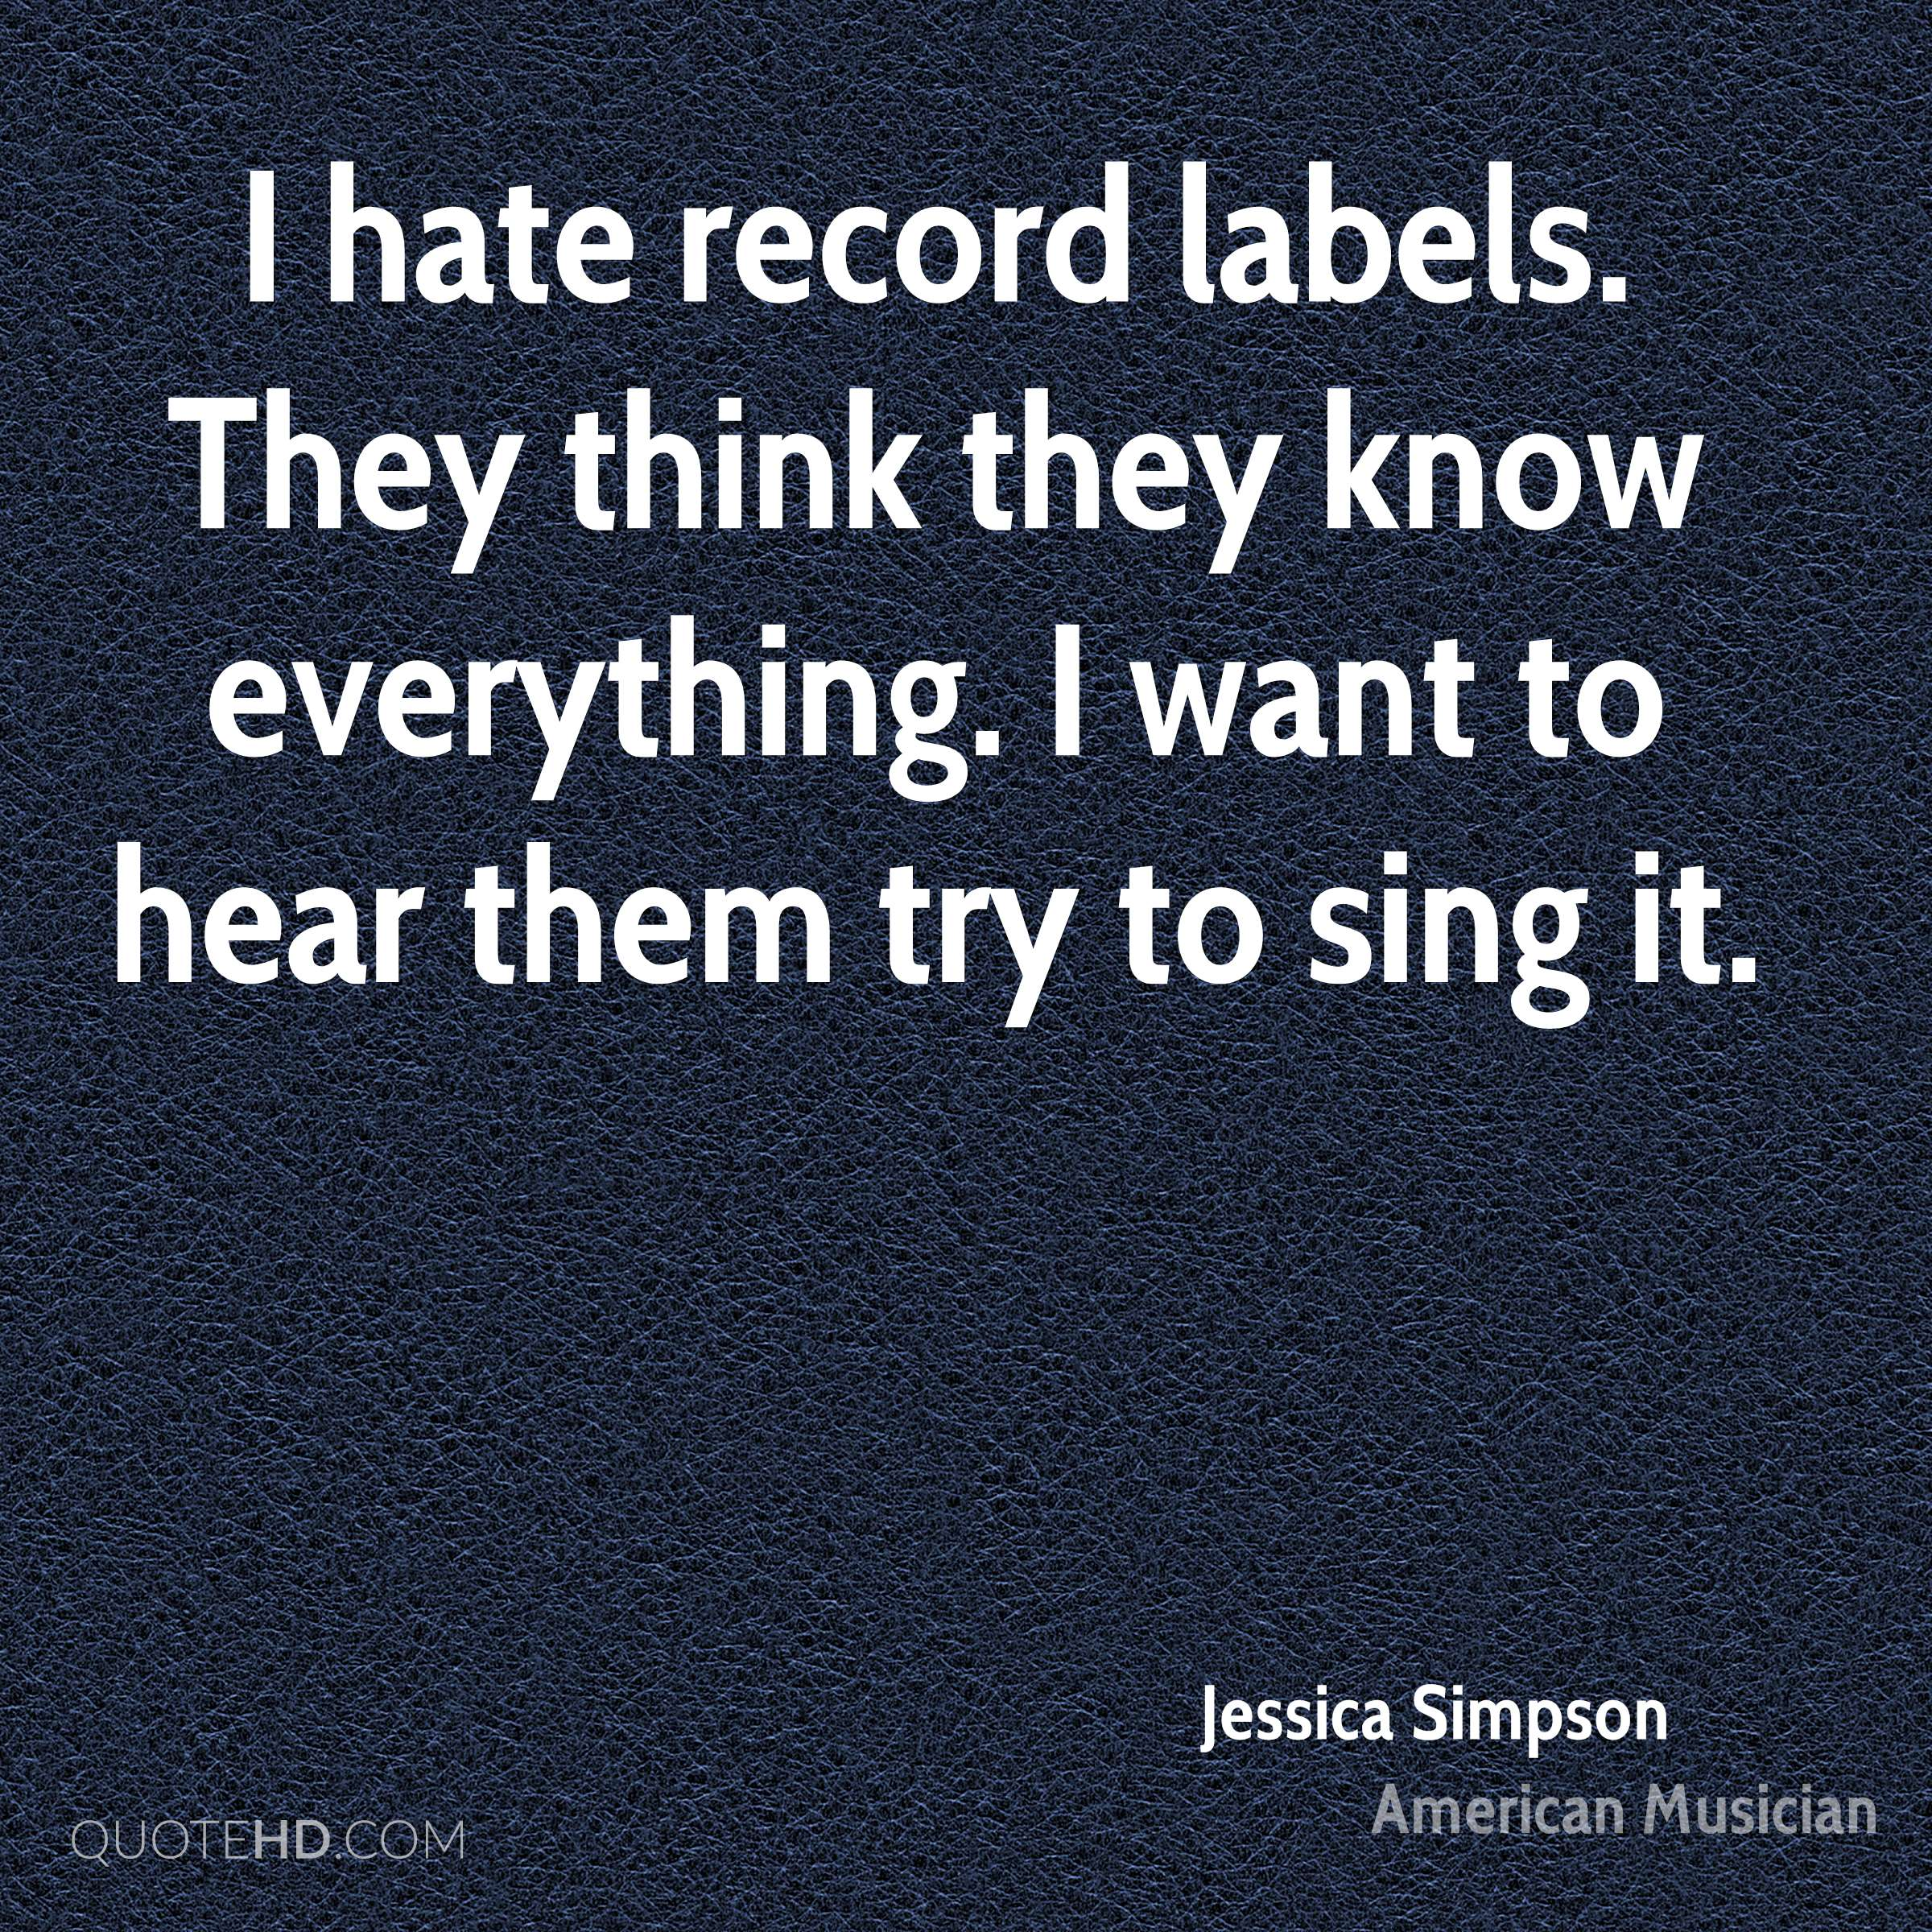 I hate record labels. They think they know everything. I want to hear them try to sing it.